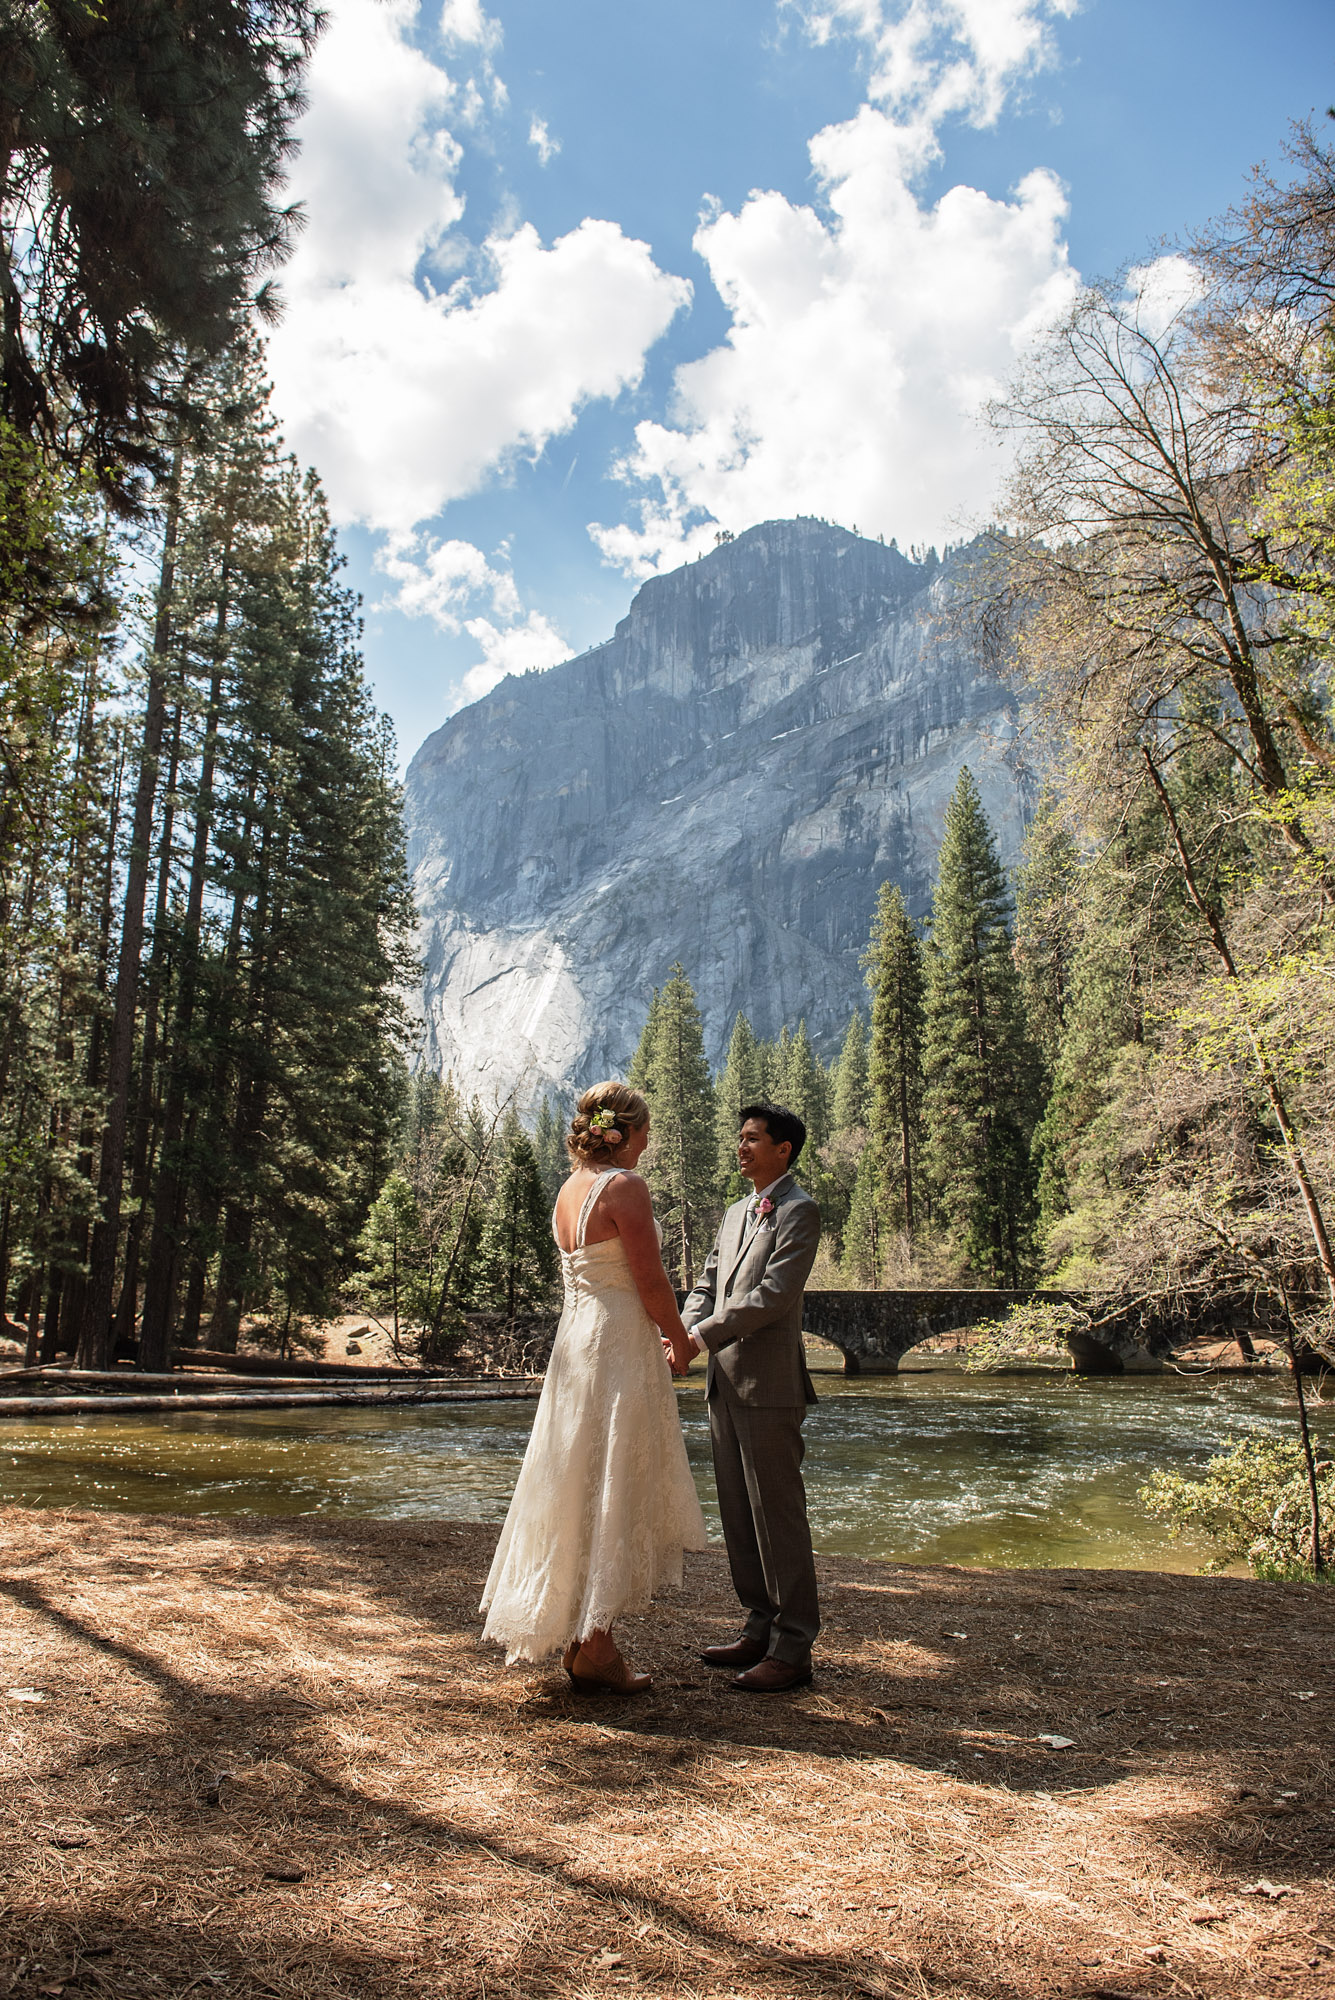 Yosemite-National-Park-Wedding-amyrollophoto.jpg